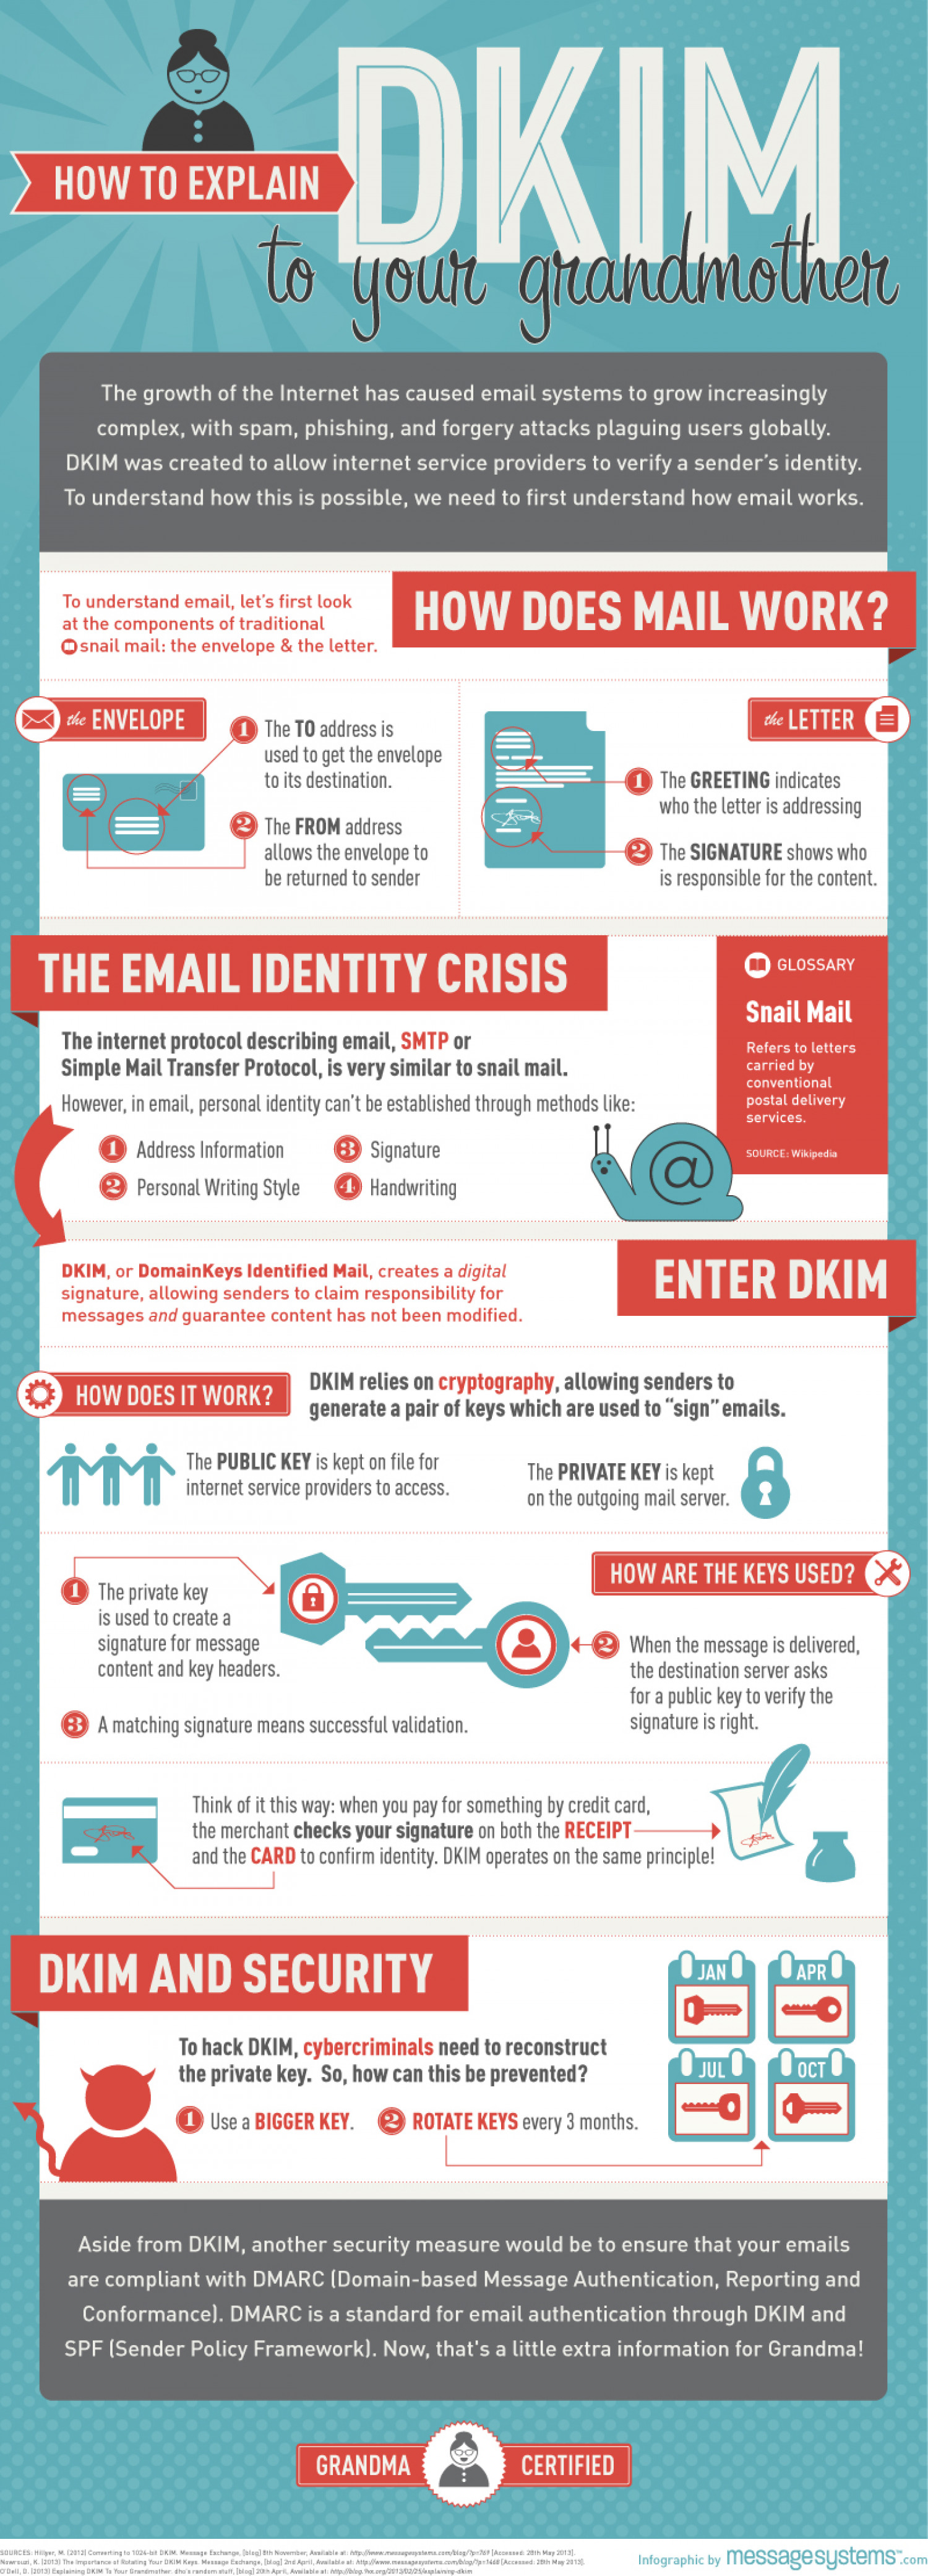 How To Explain DKIM To Your Grandmother Infographic